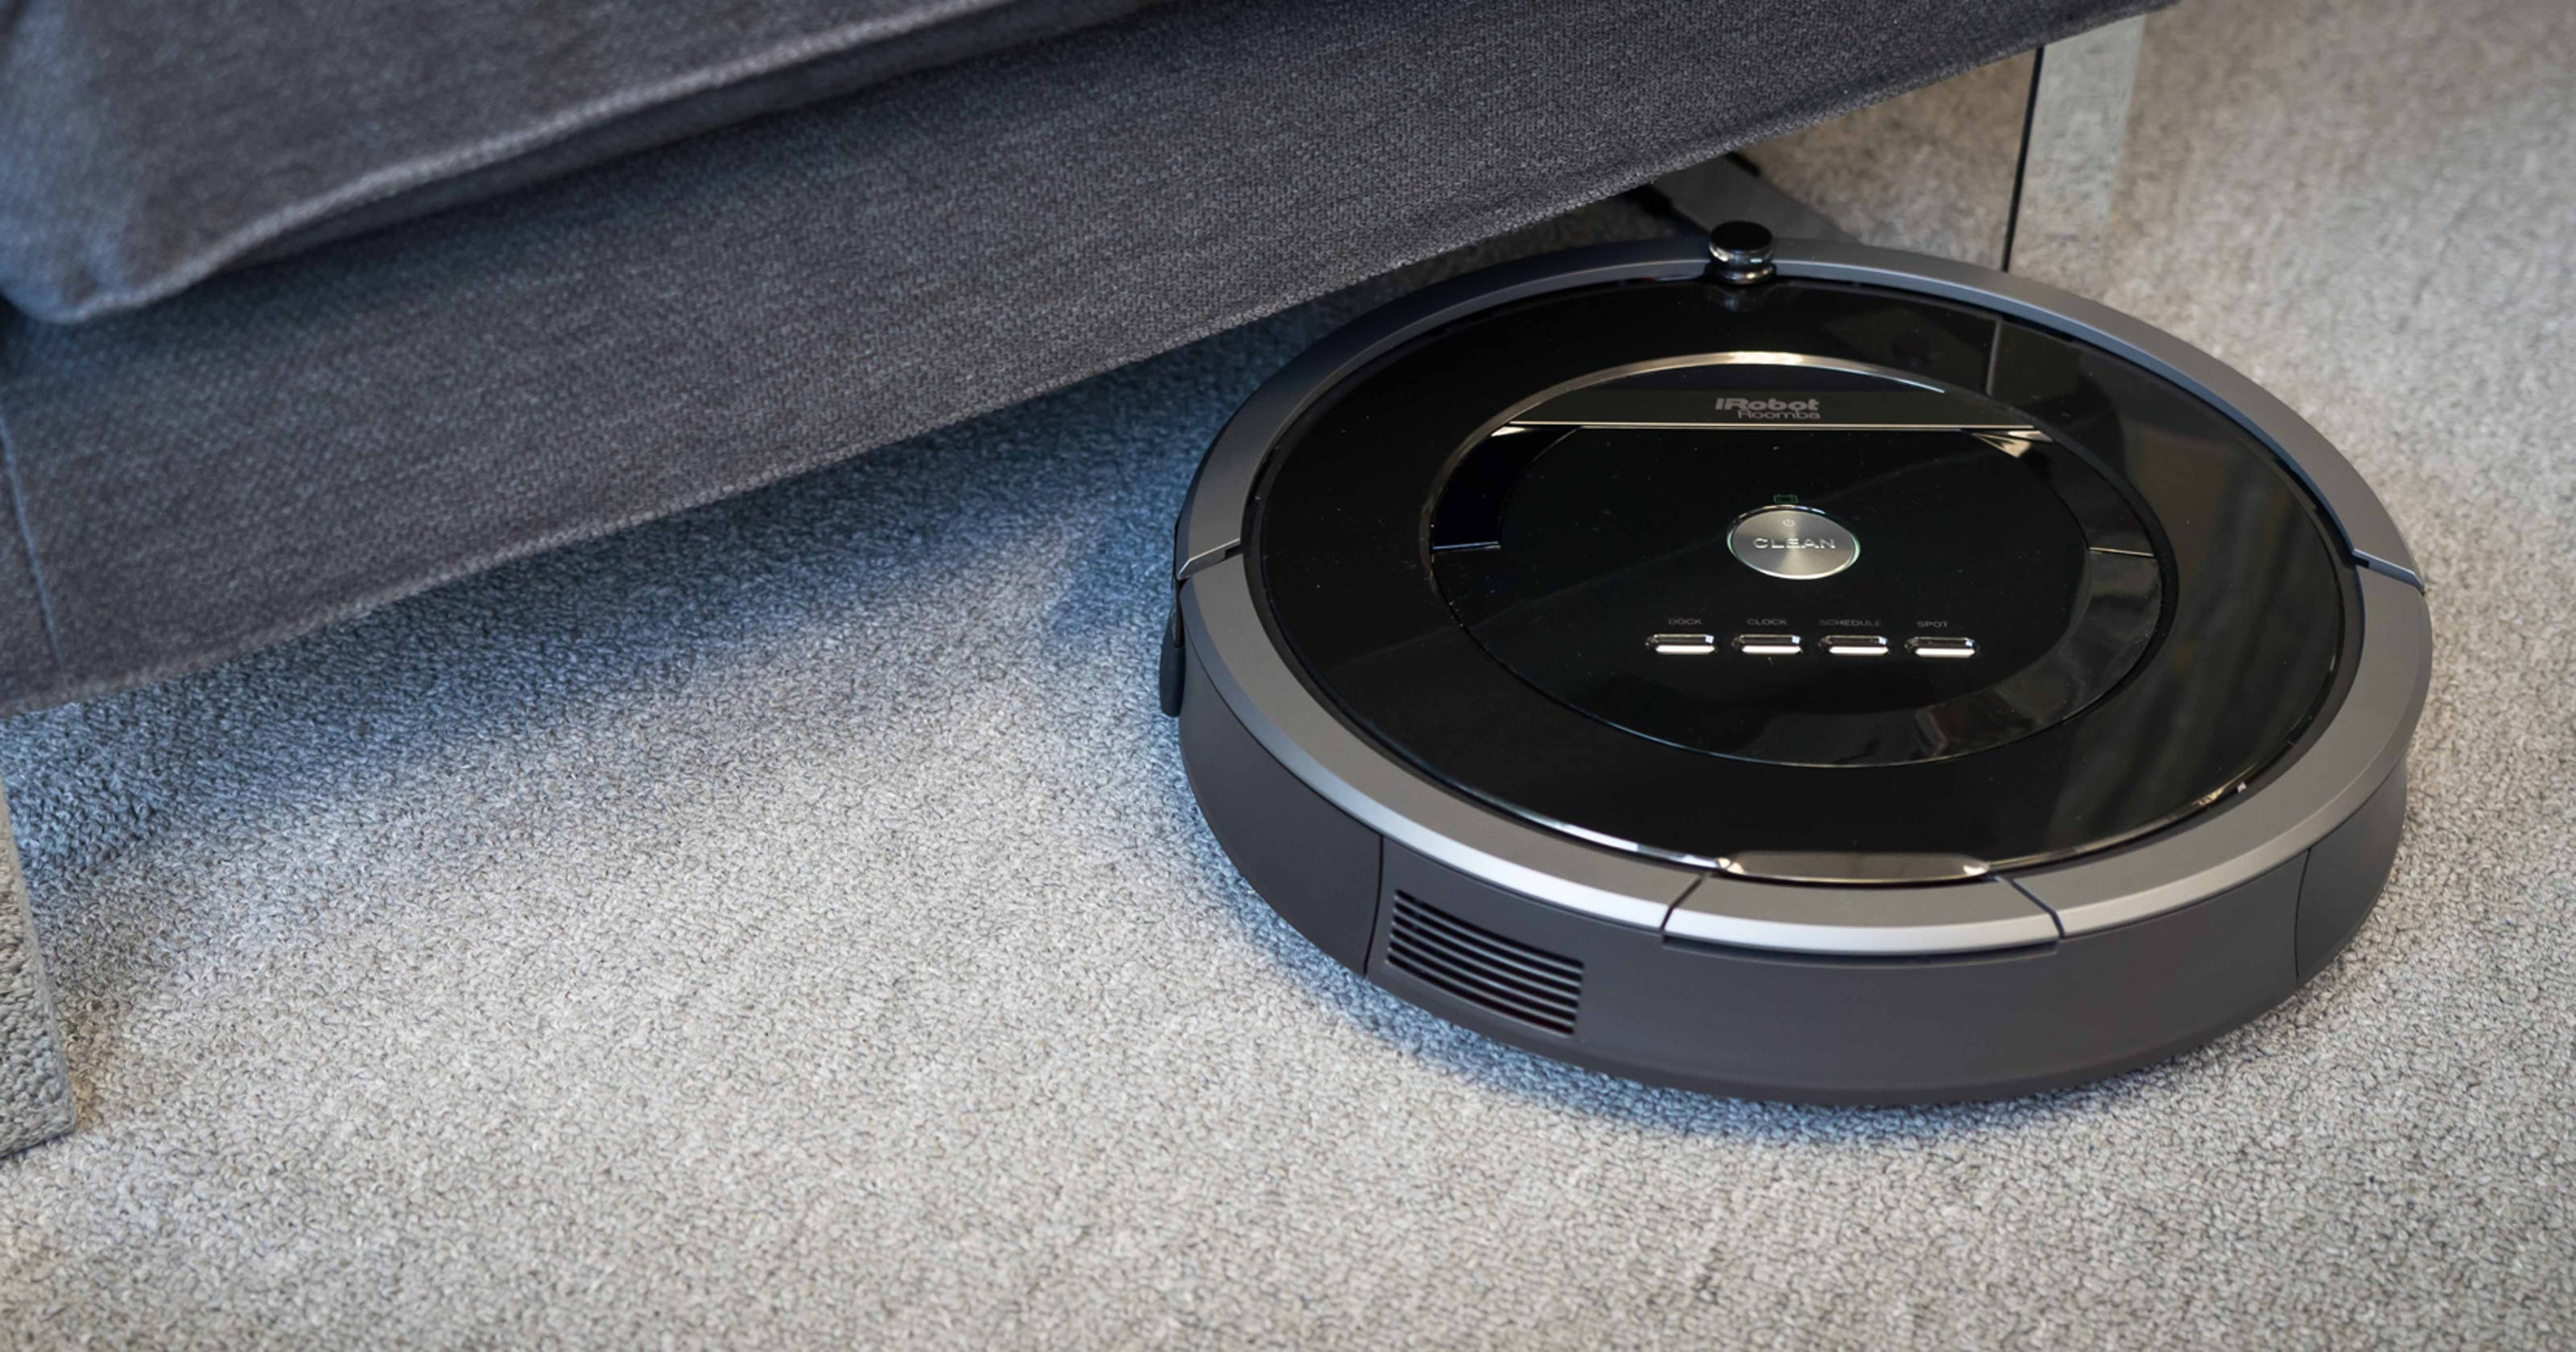 The new Roomba is too polite for its own good